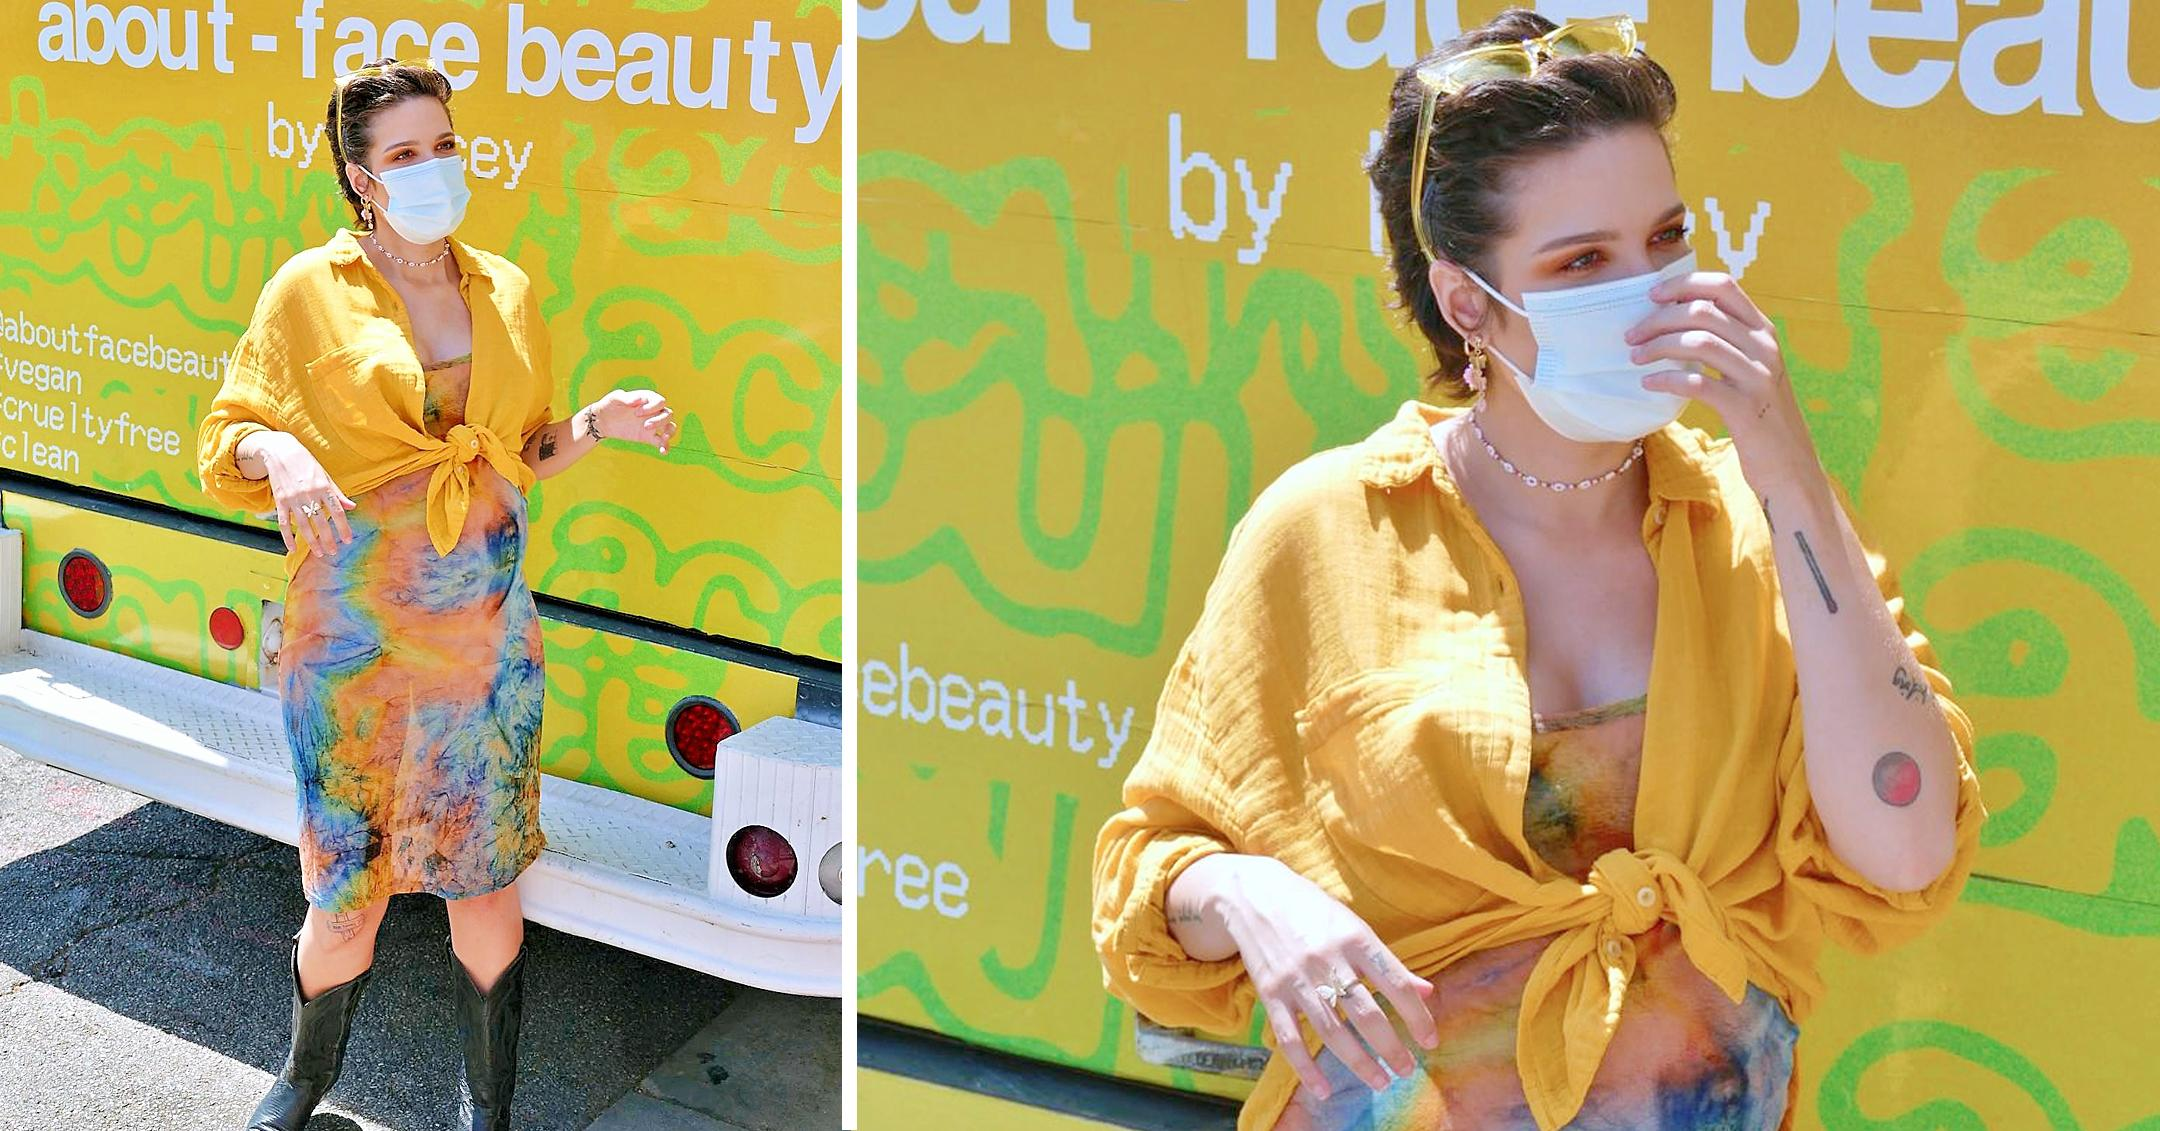 pregnant halsey greets fans at her about face beauty pop up